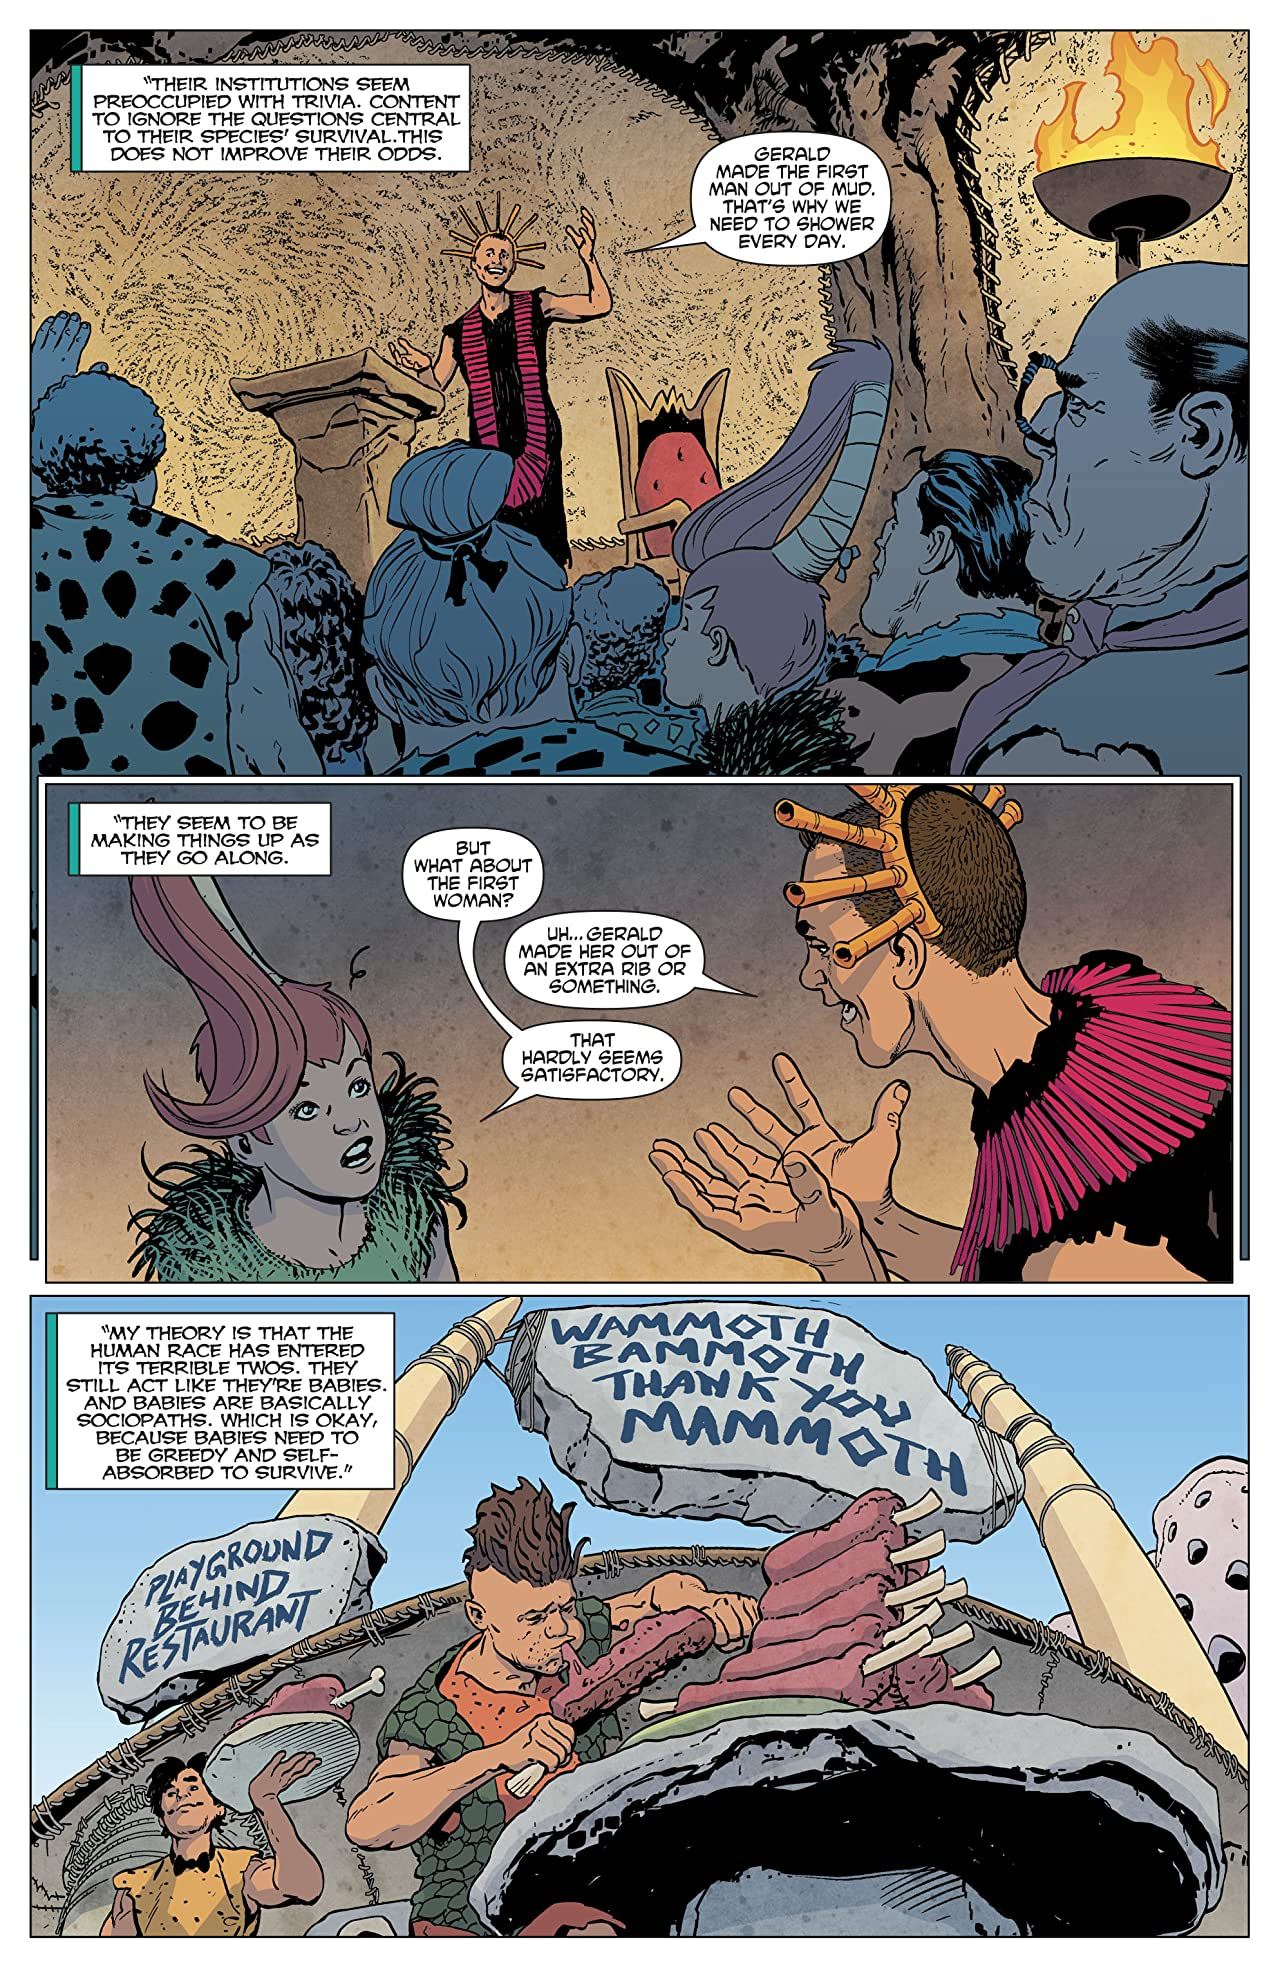 The Flintstones (2016-) #12